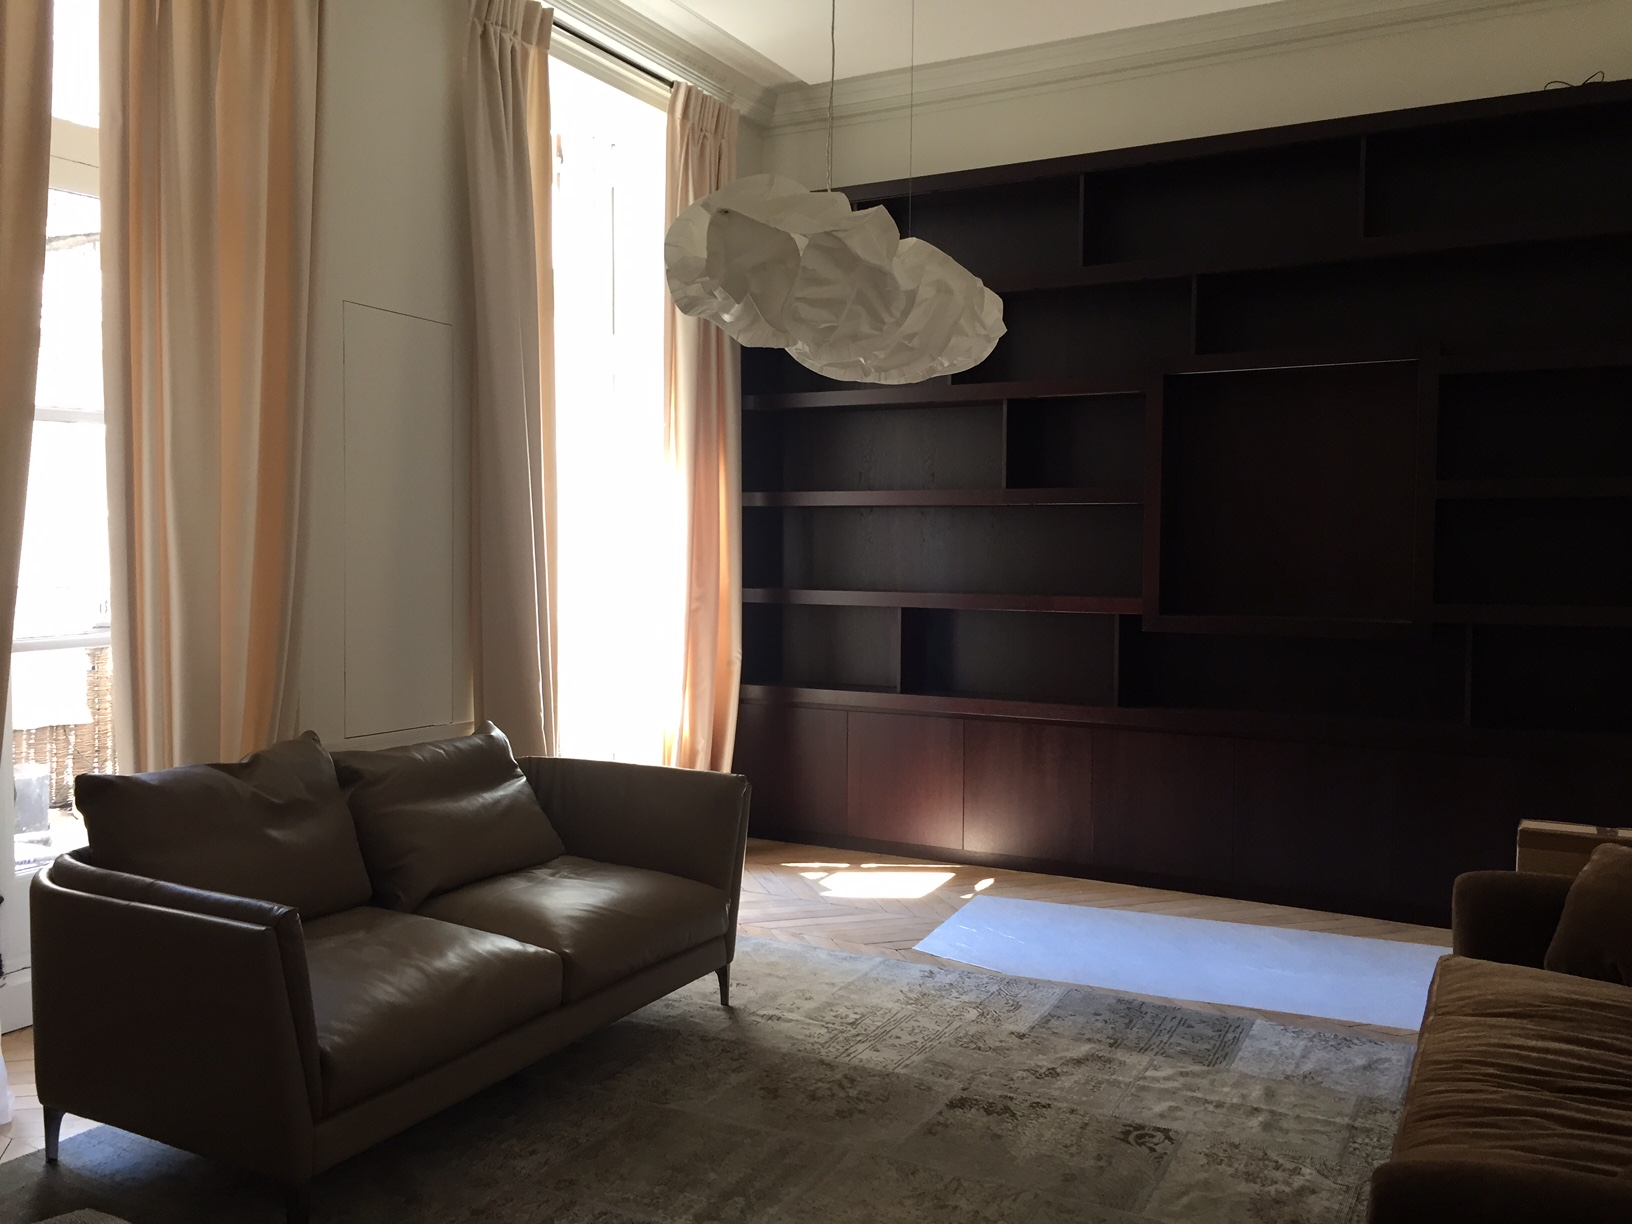 Réfection d'un appartement au 18 rue Cassette – 75016 Paris 3